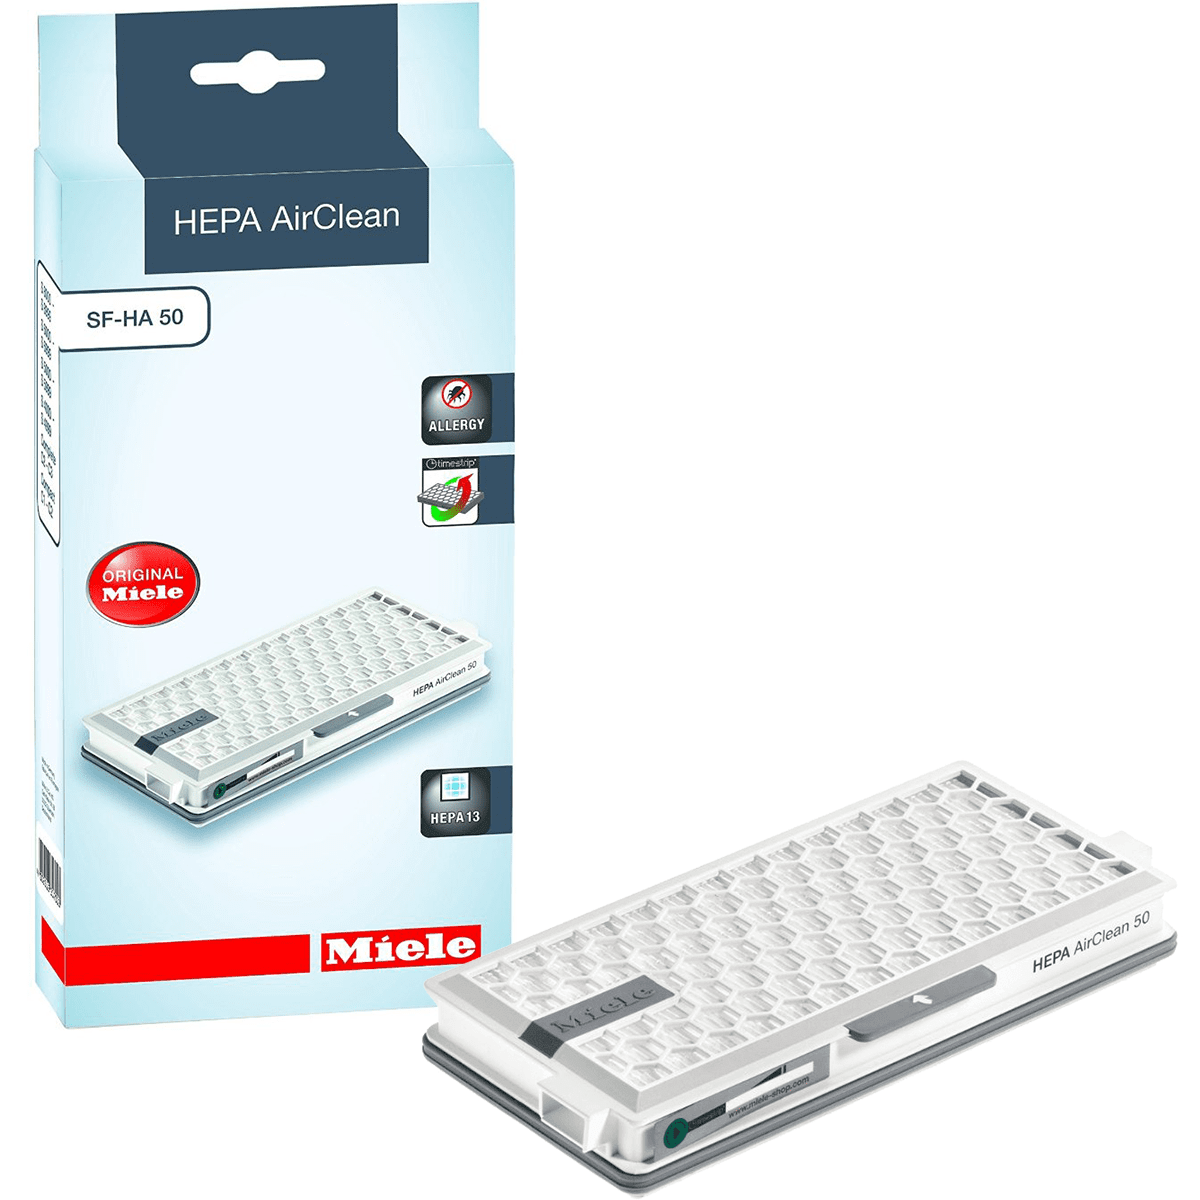 Miele SF-HA50 HEPA AirClean Filter mi3575